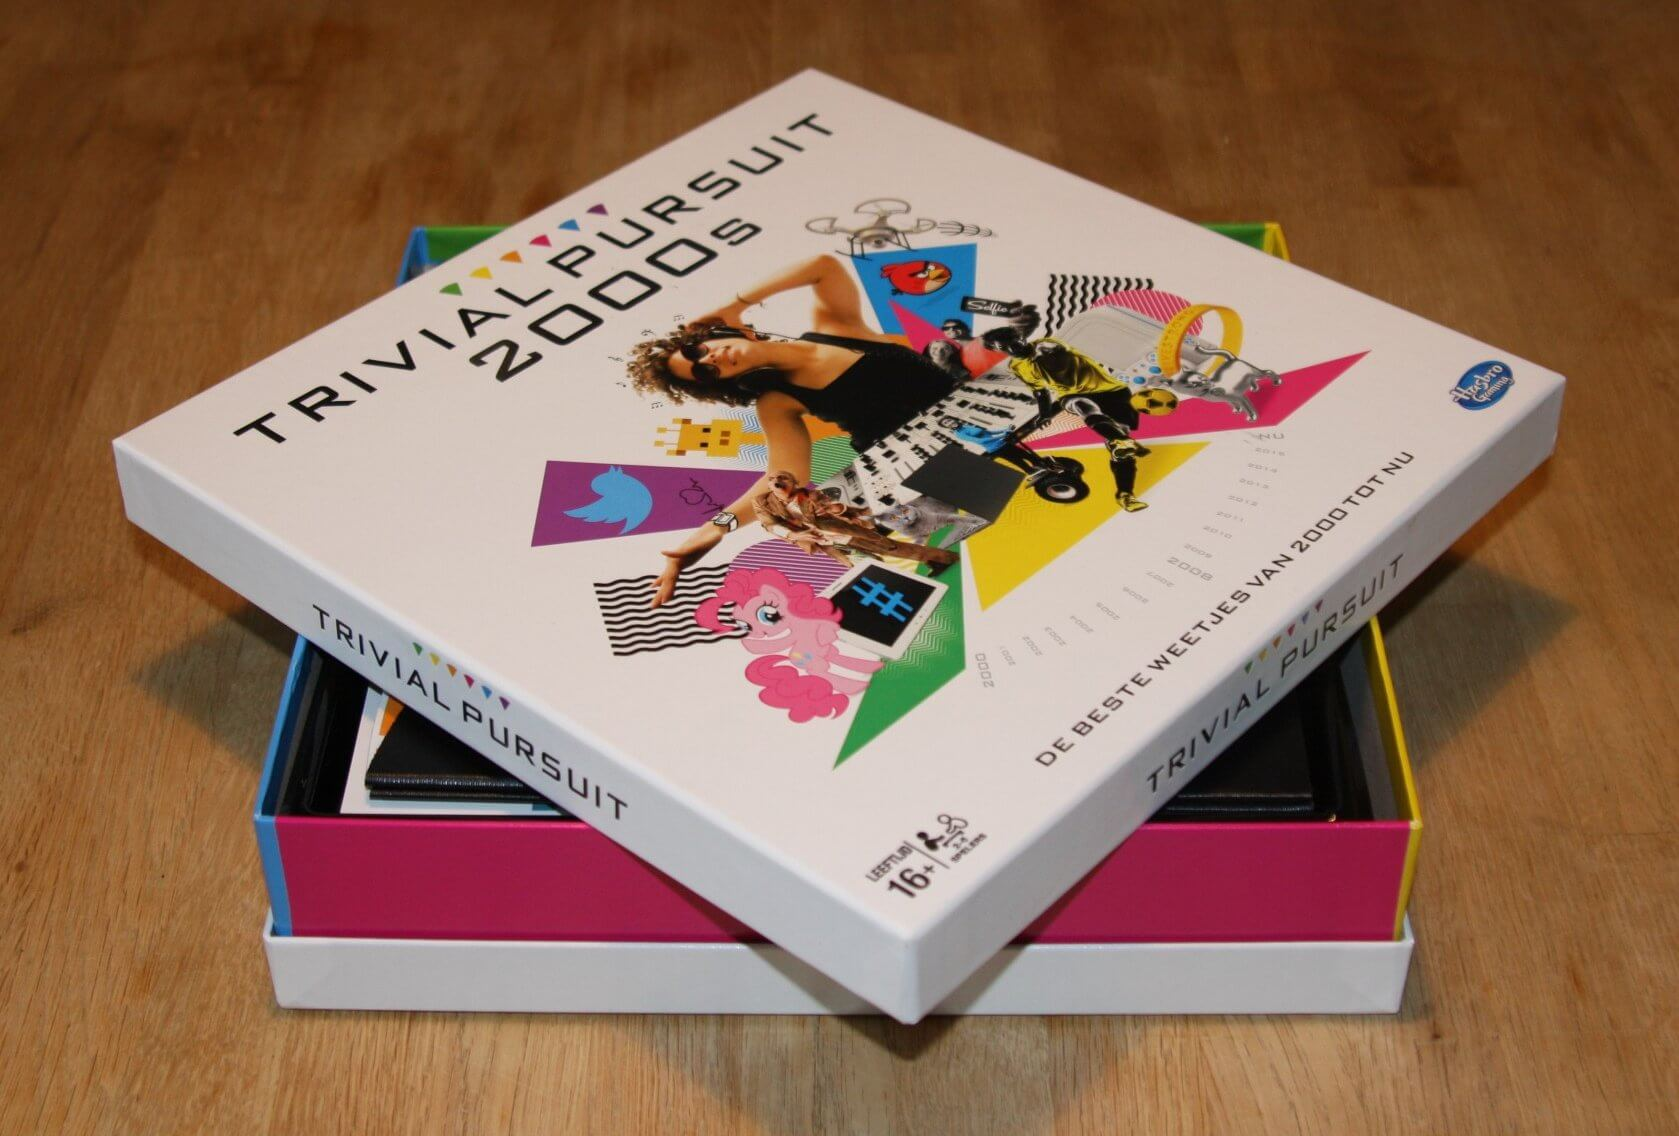 Win 5-daagse | TrivialPursuit 2000's